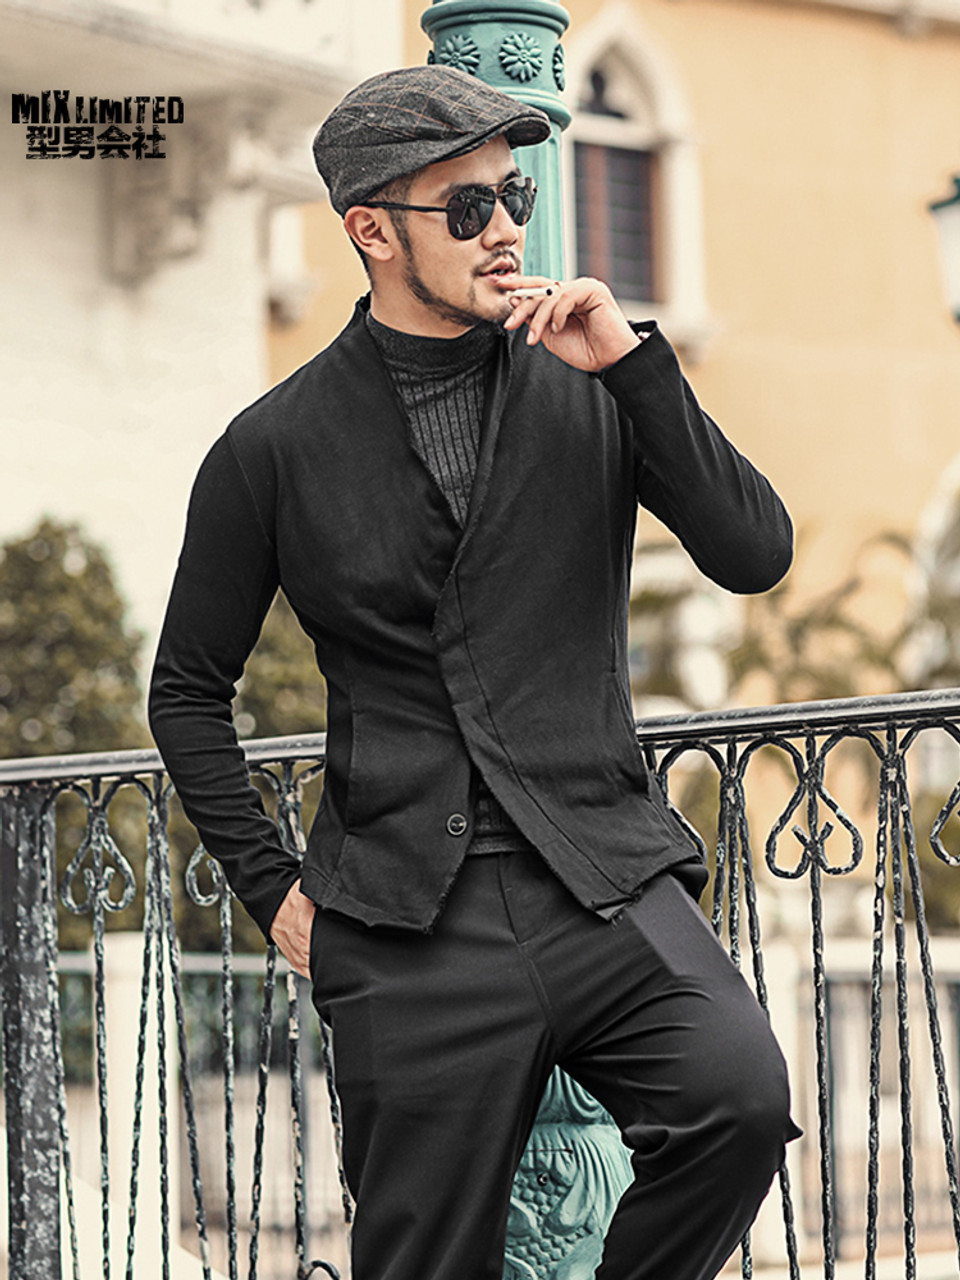 Men Washed European Style Short Black Suit Jacket New Design Metrosexual Man Slim Burr Suit Blazer Fashion Winter Outwear F111 Onshopdeals Com